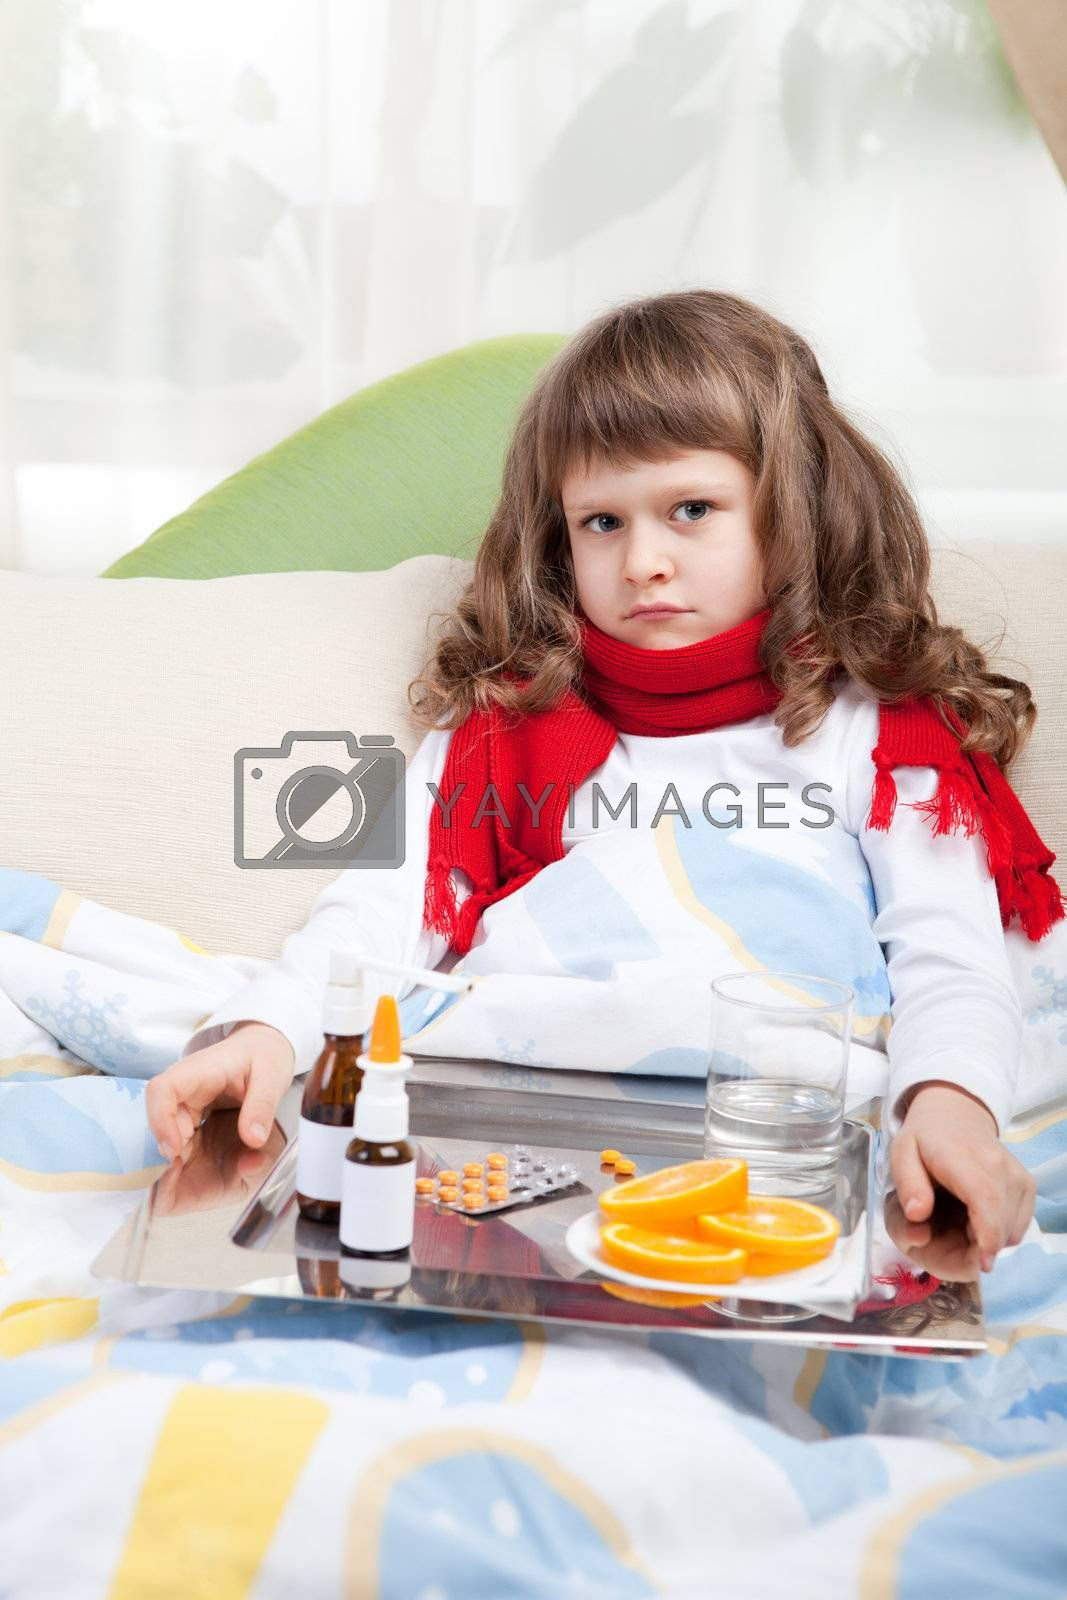 Royalty free image of Little sick girl with scarf in bed is taking medicine by SergeyAK